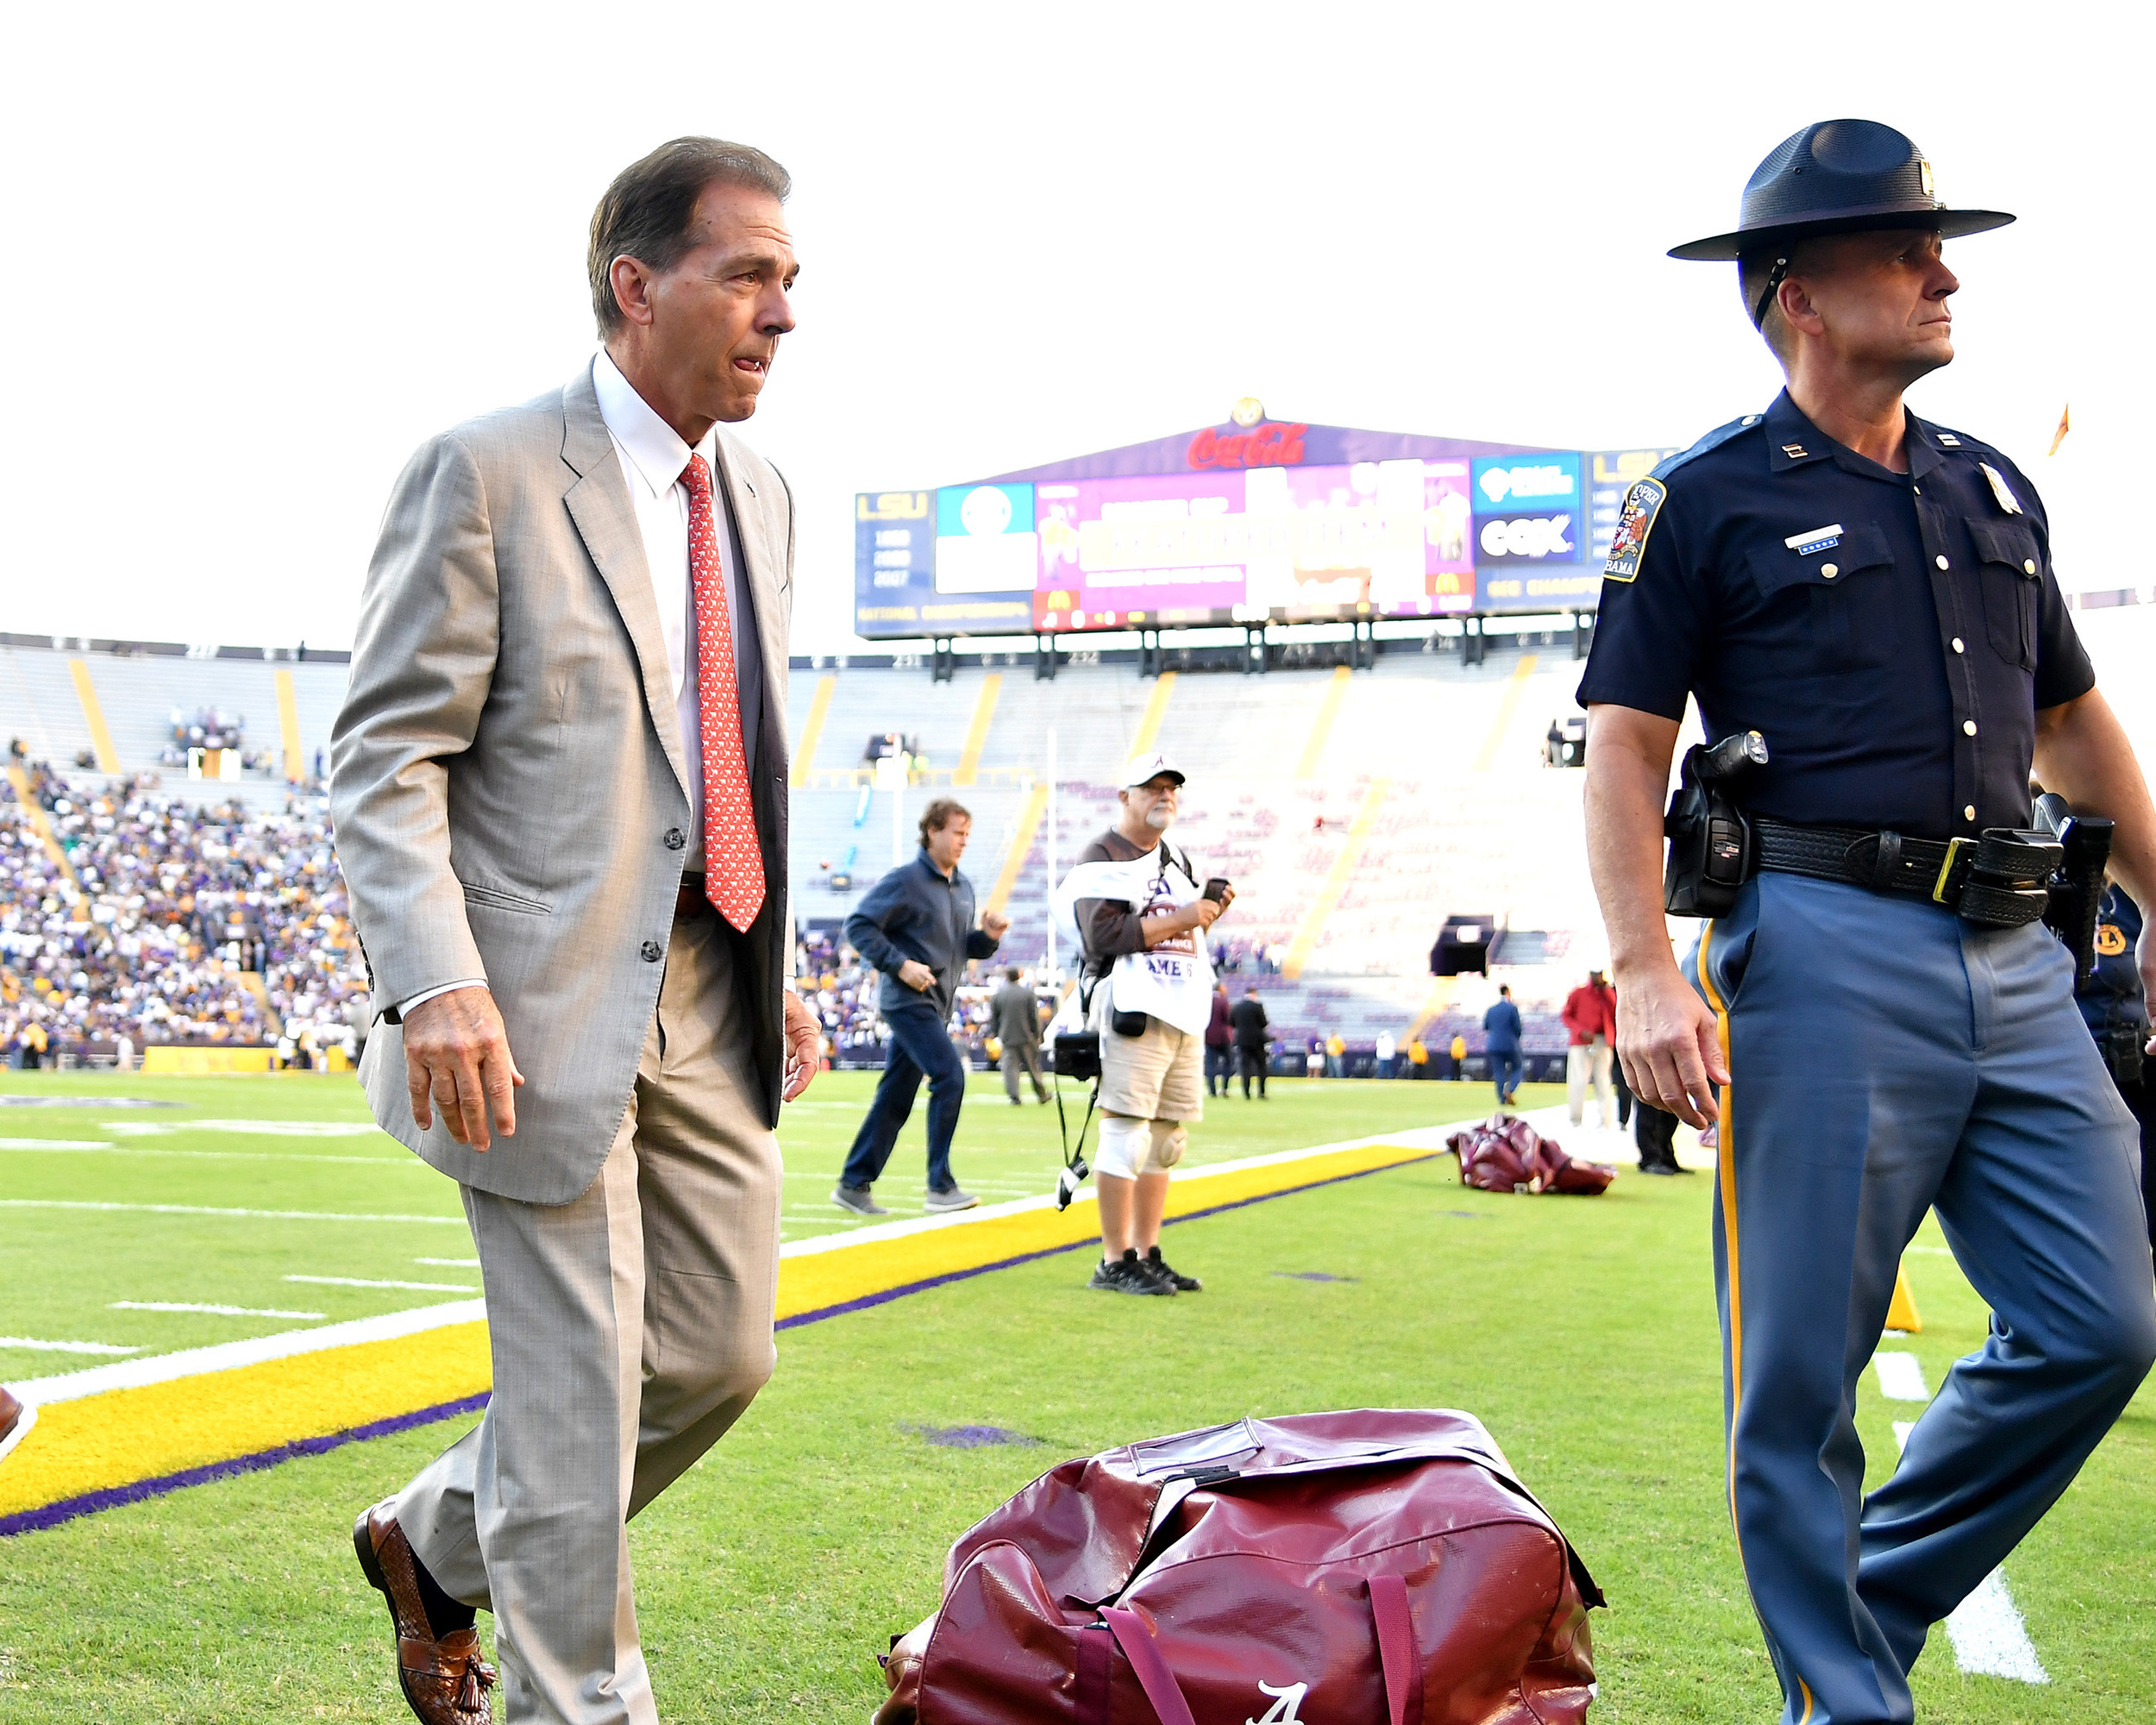 Alabama Crimson Tide head coach Nick Saban walks the field prior to an NCAA football game against the LSU Tigers Saturday, November 3, 2018, in Baton Rouge, La. (Photo by Lee Walls)